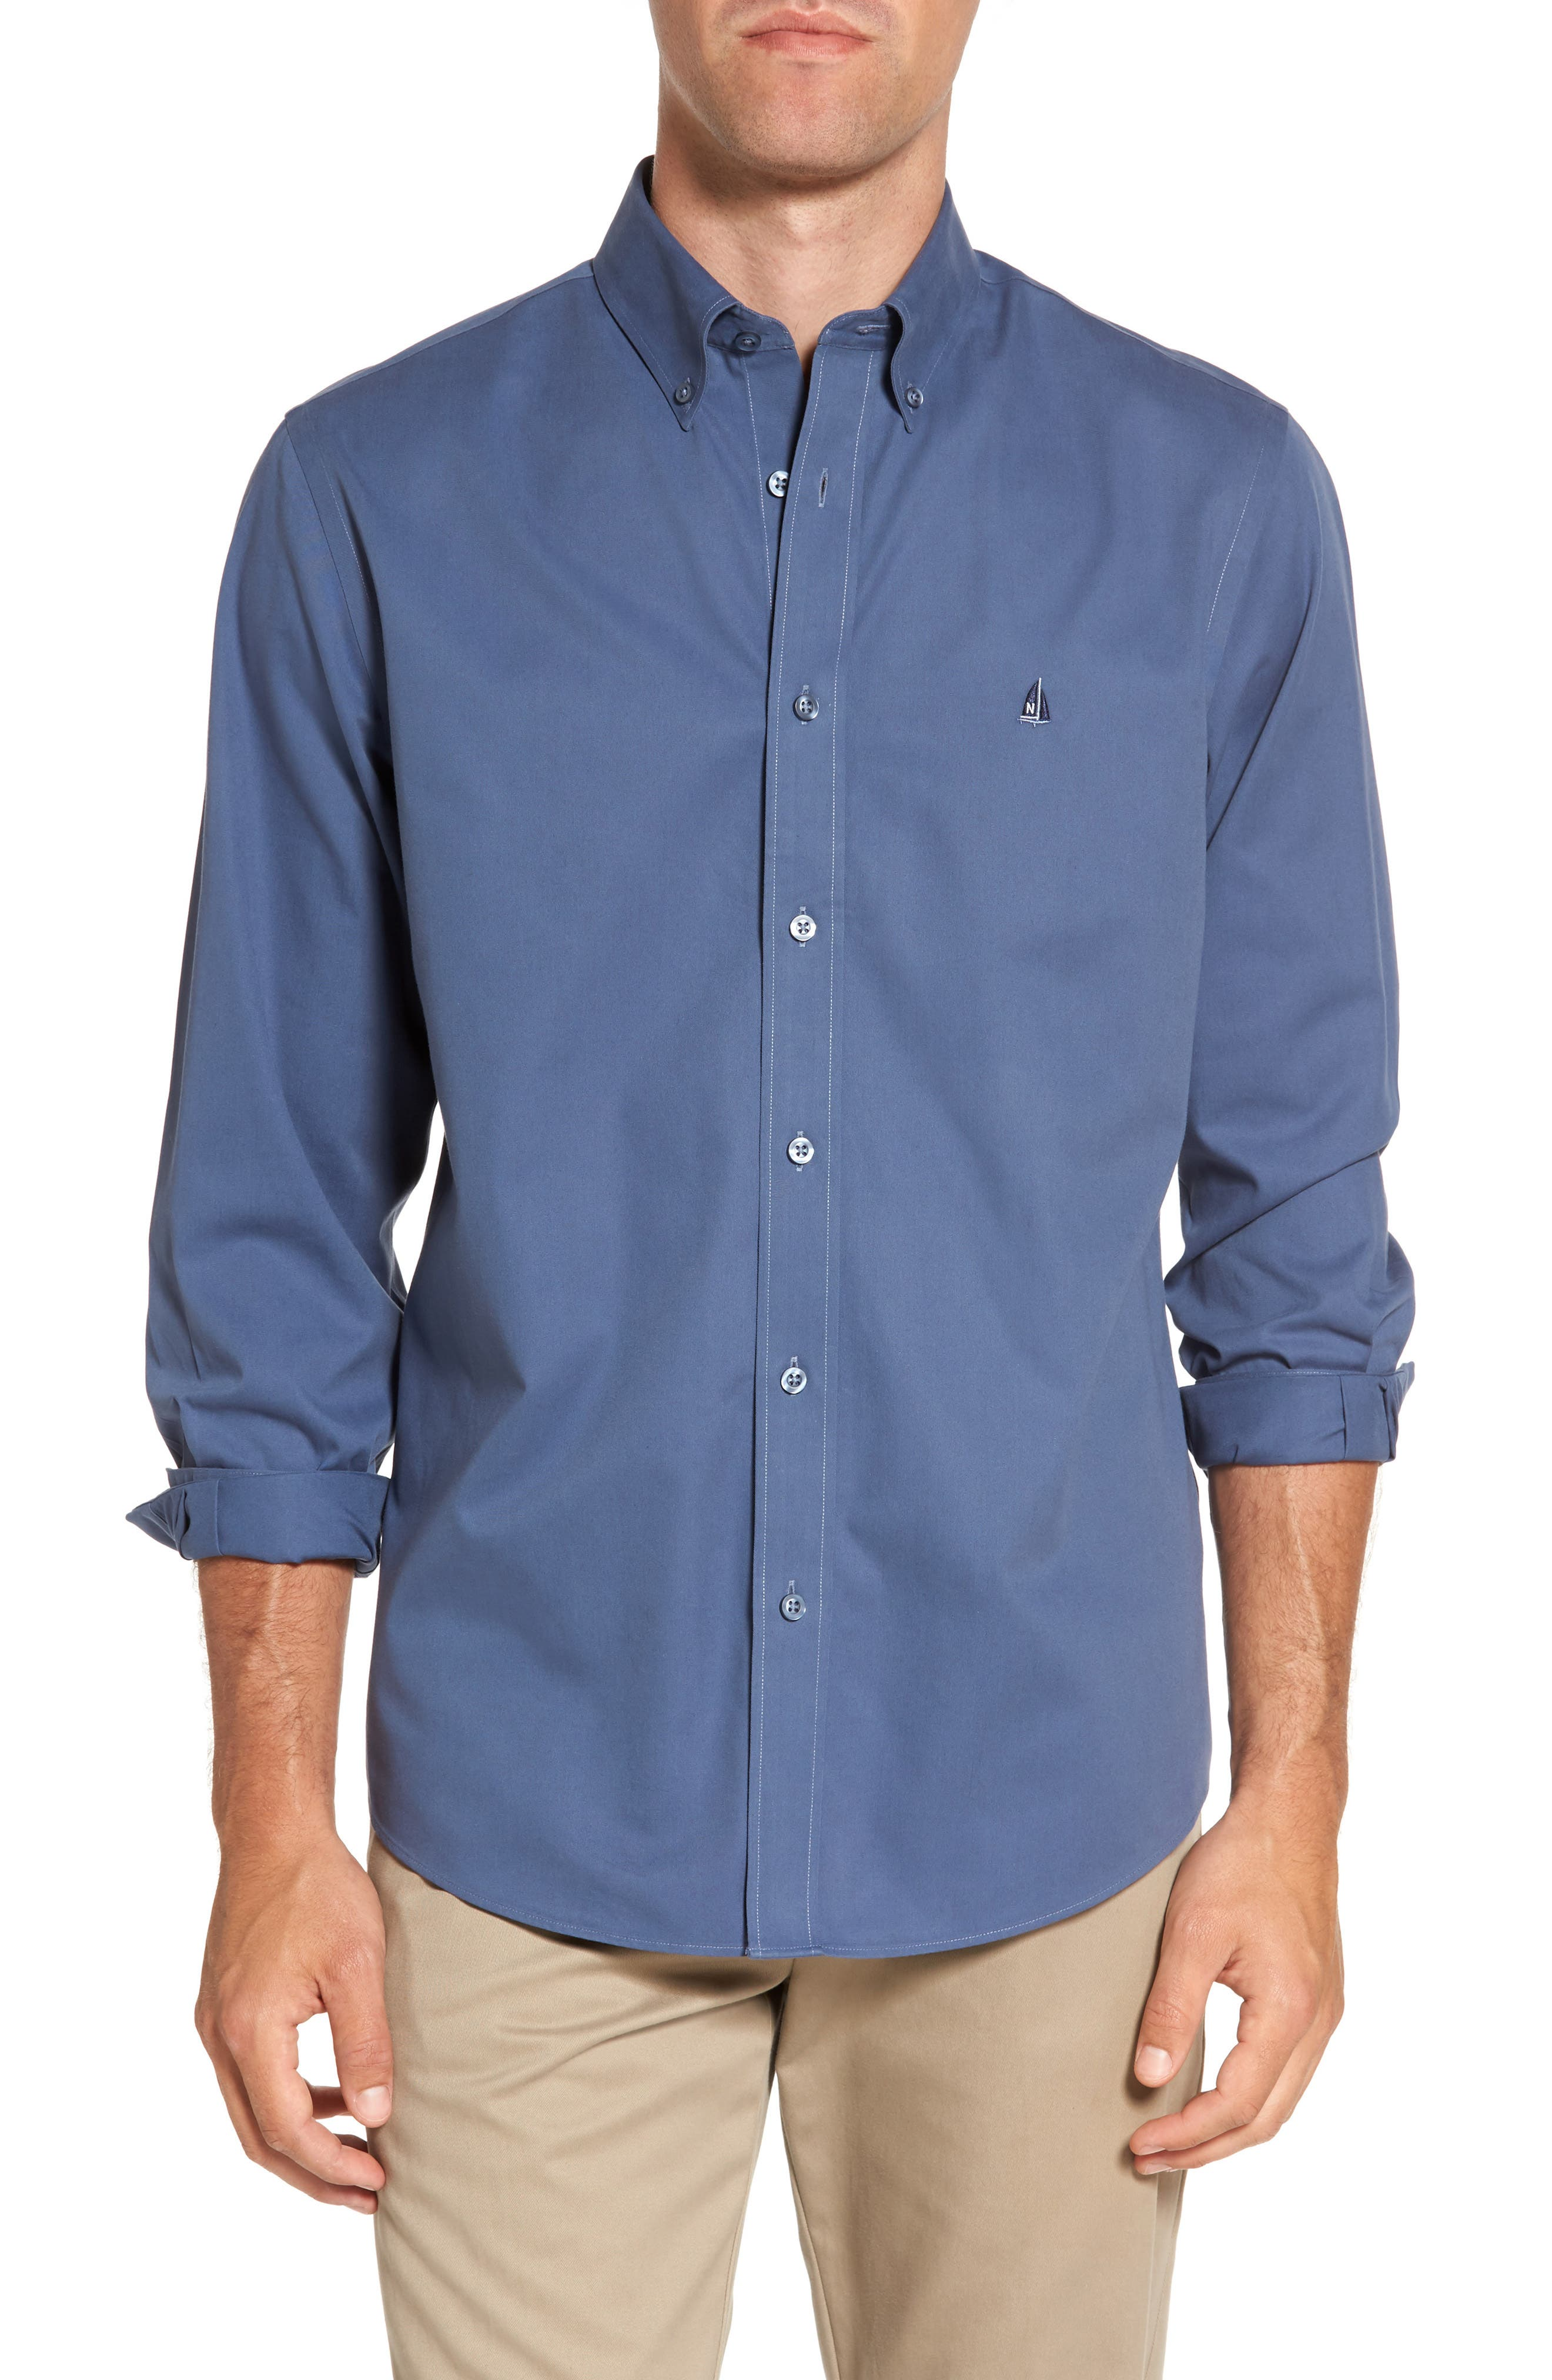 Alternate Image 1 Selected - Nordstrom Men's Shop Smartcare™ Traditional Fit Twill Boat Shirt (Regular & Tall)